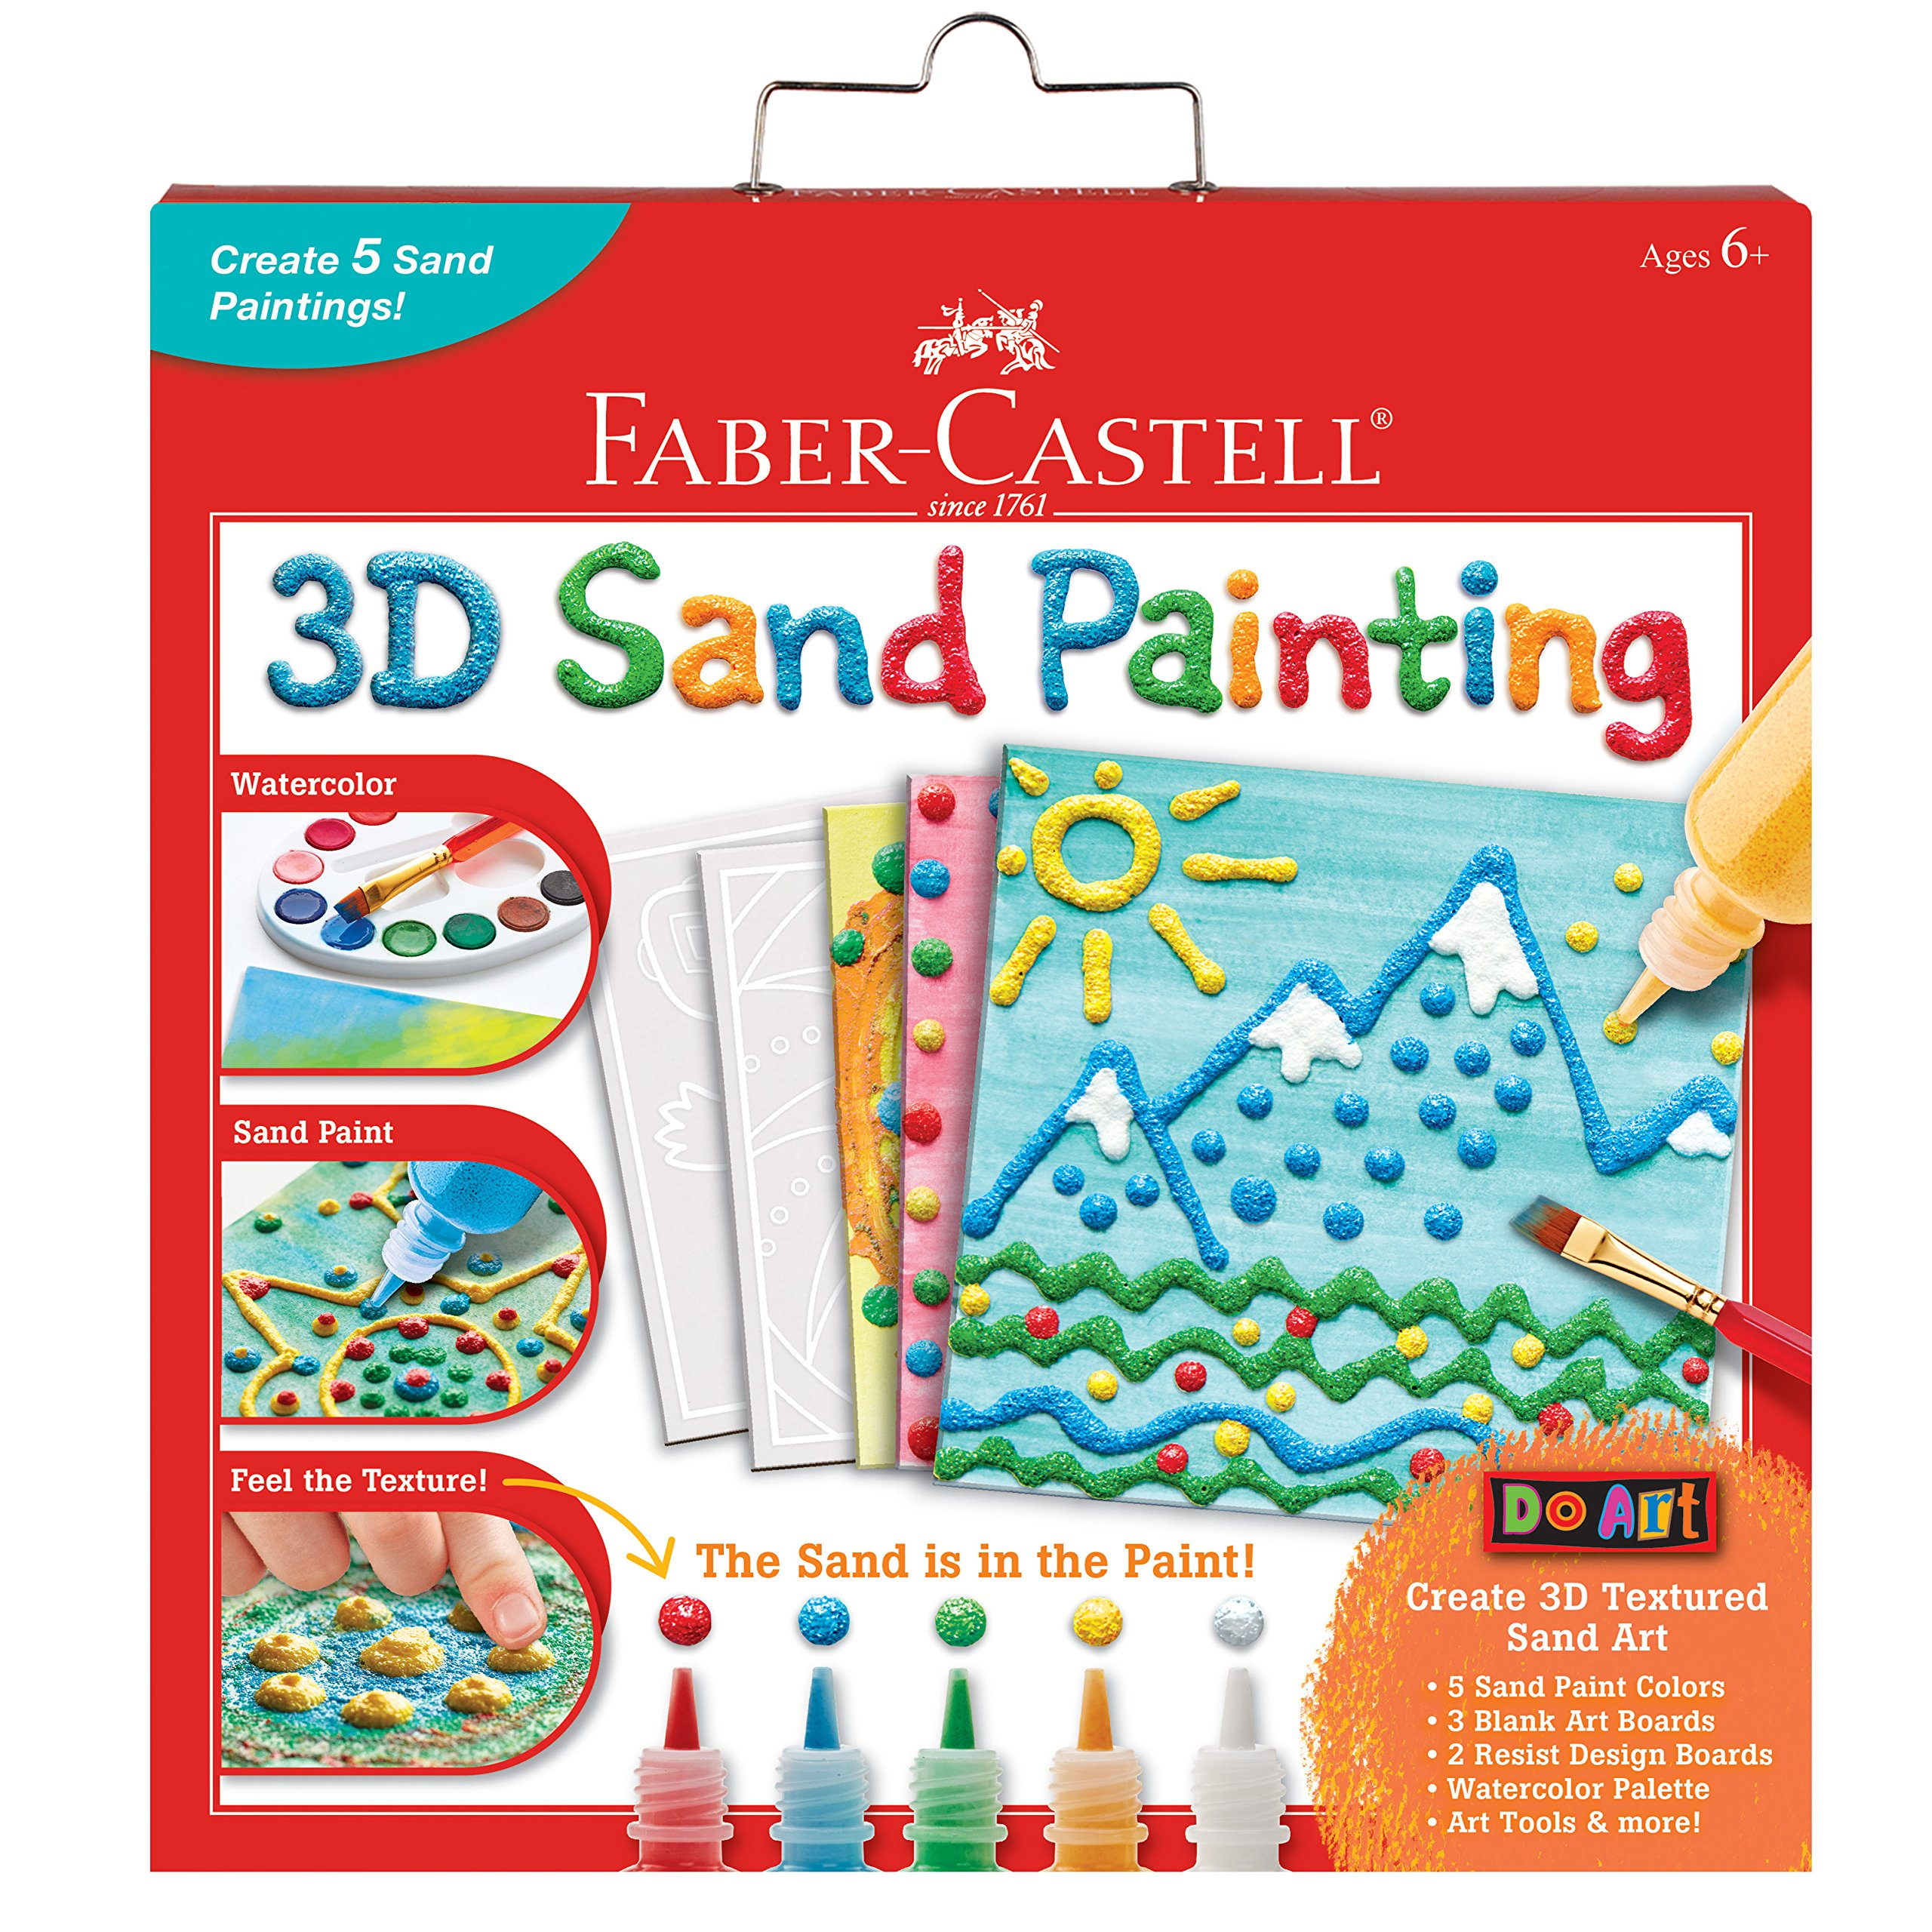 Faber Castell 3D Sand Painting